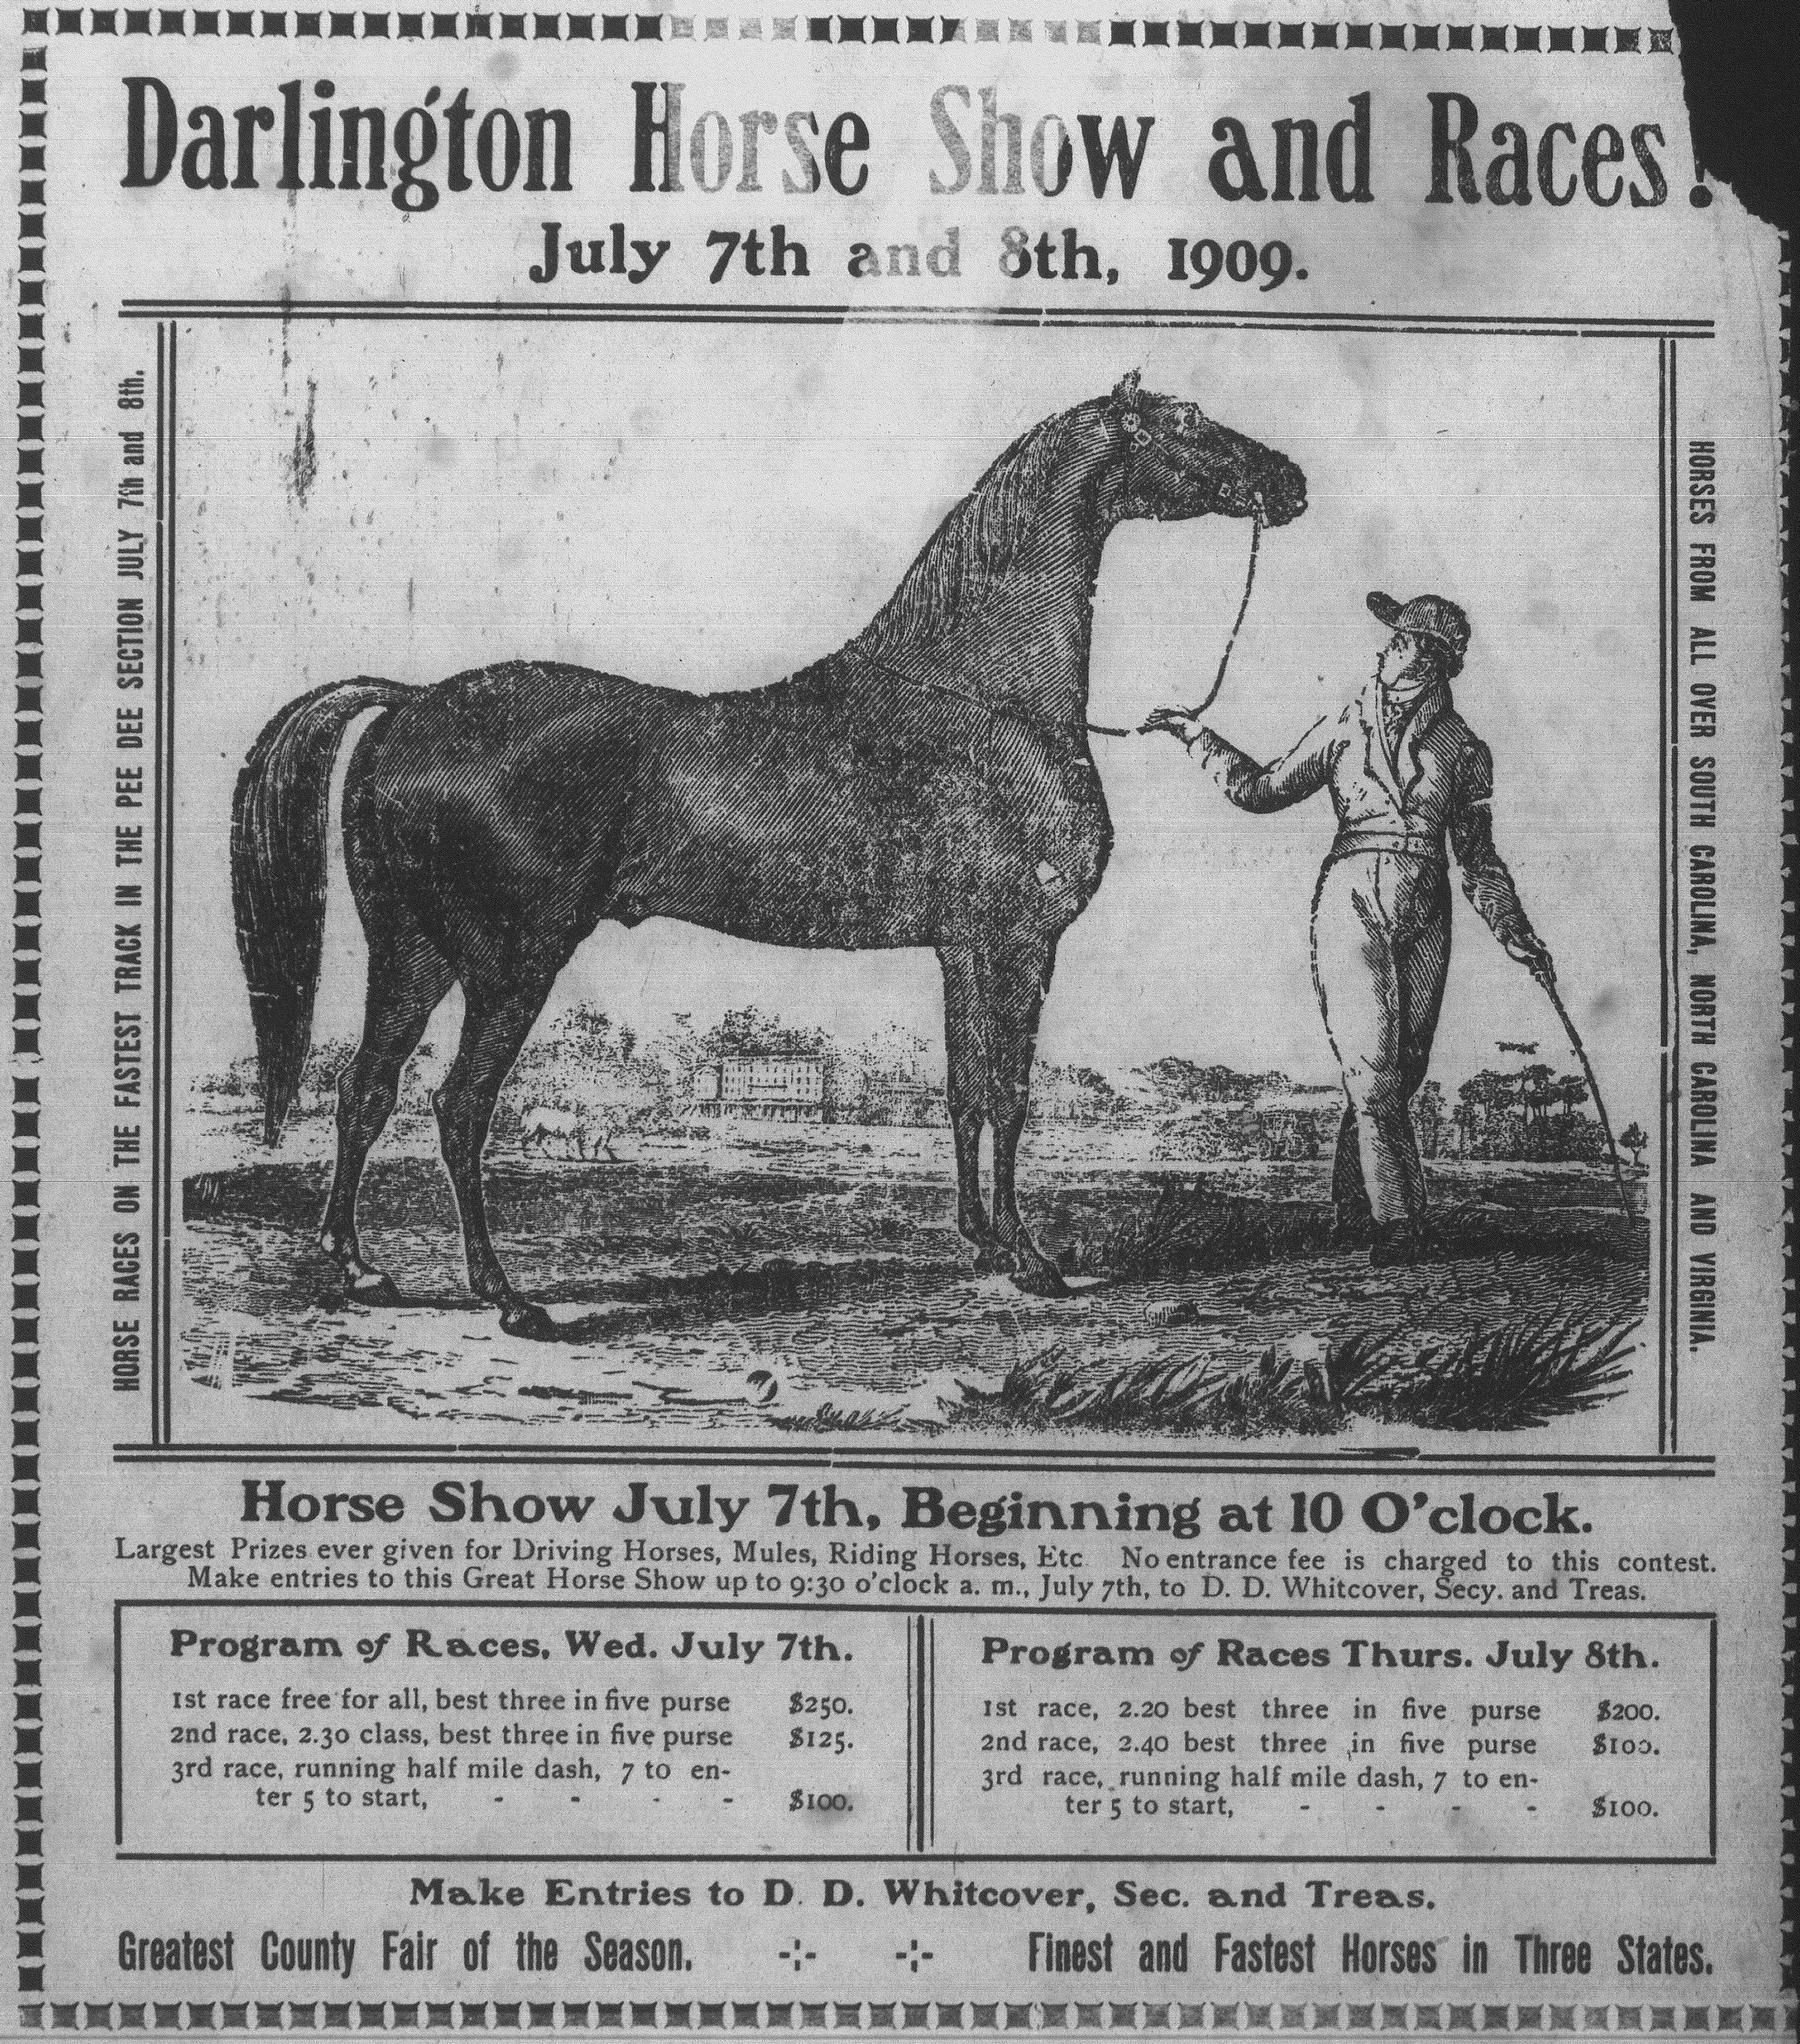 This ad for the Darlington Horse Show and Races was published in 1909.